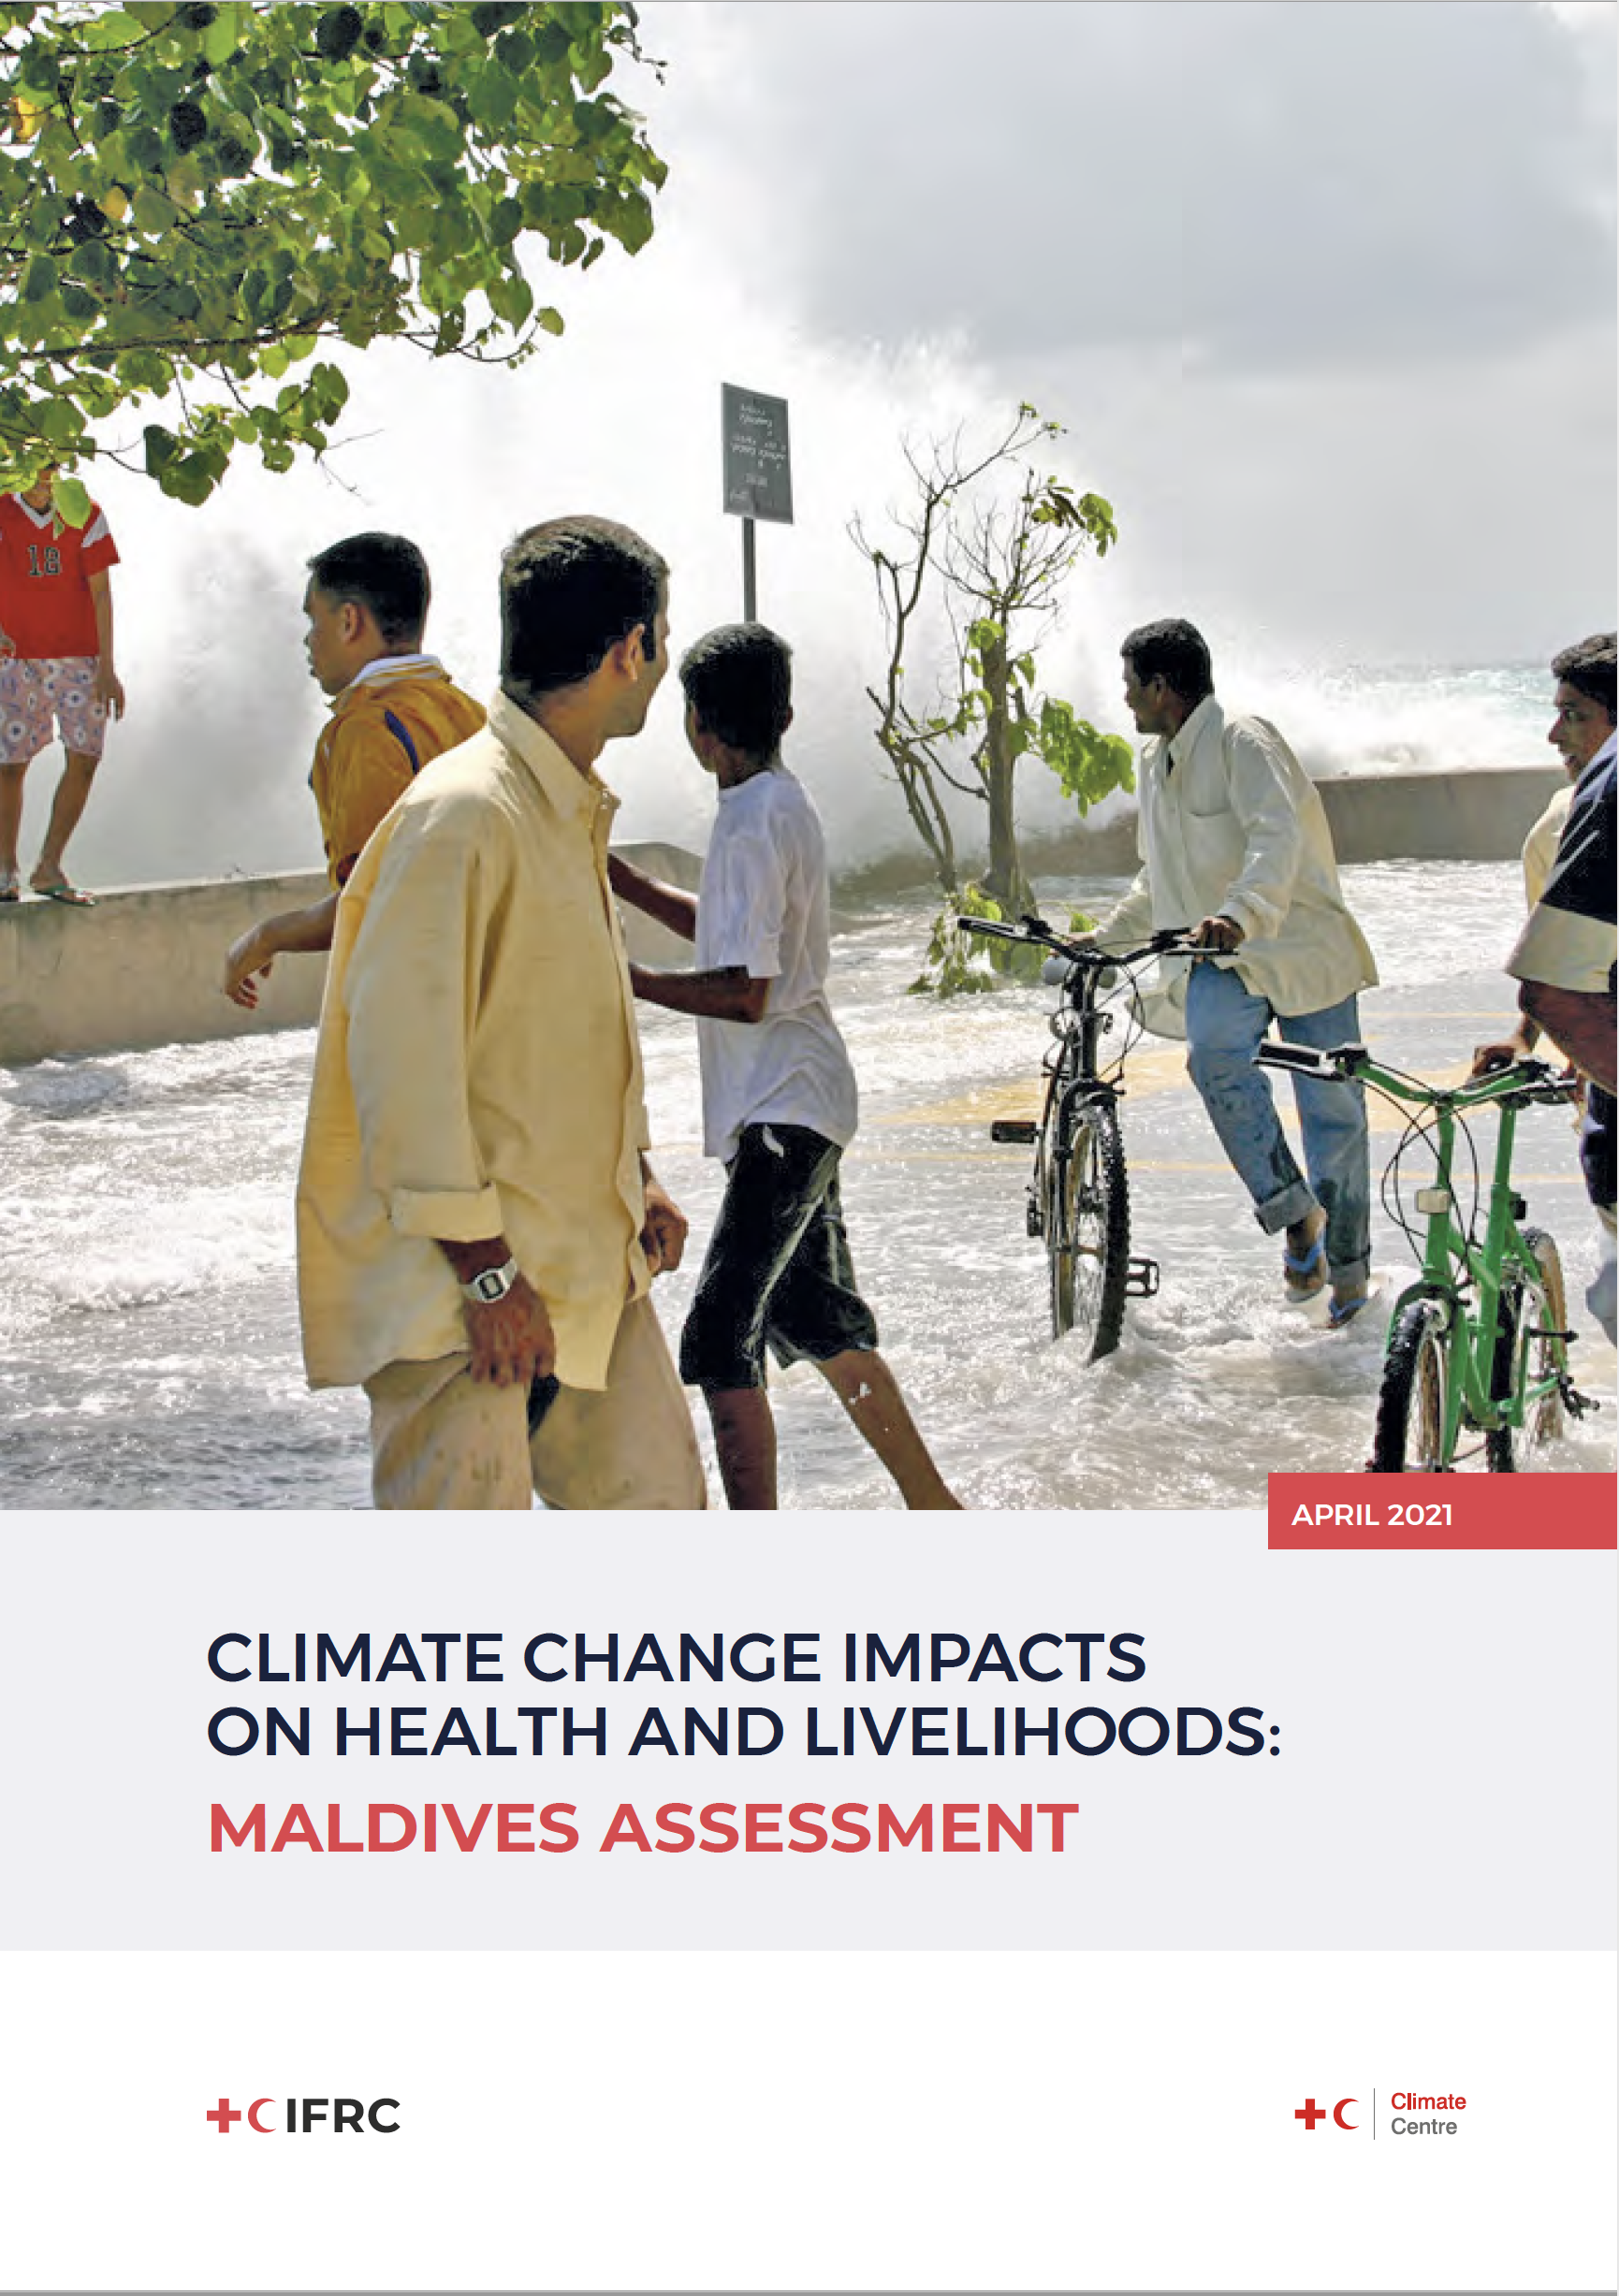 Climate Change Impacts on Health and Livelihoods: Maldives Assessment